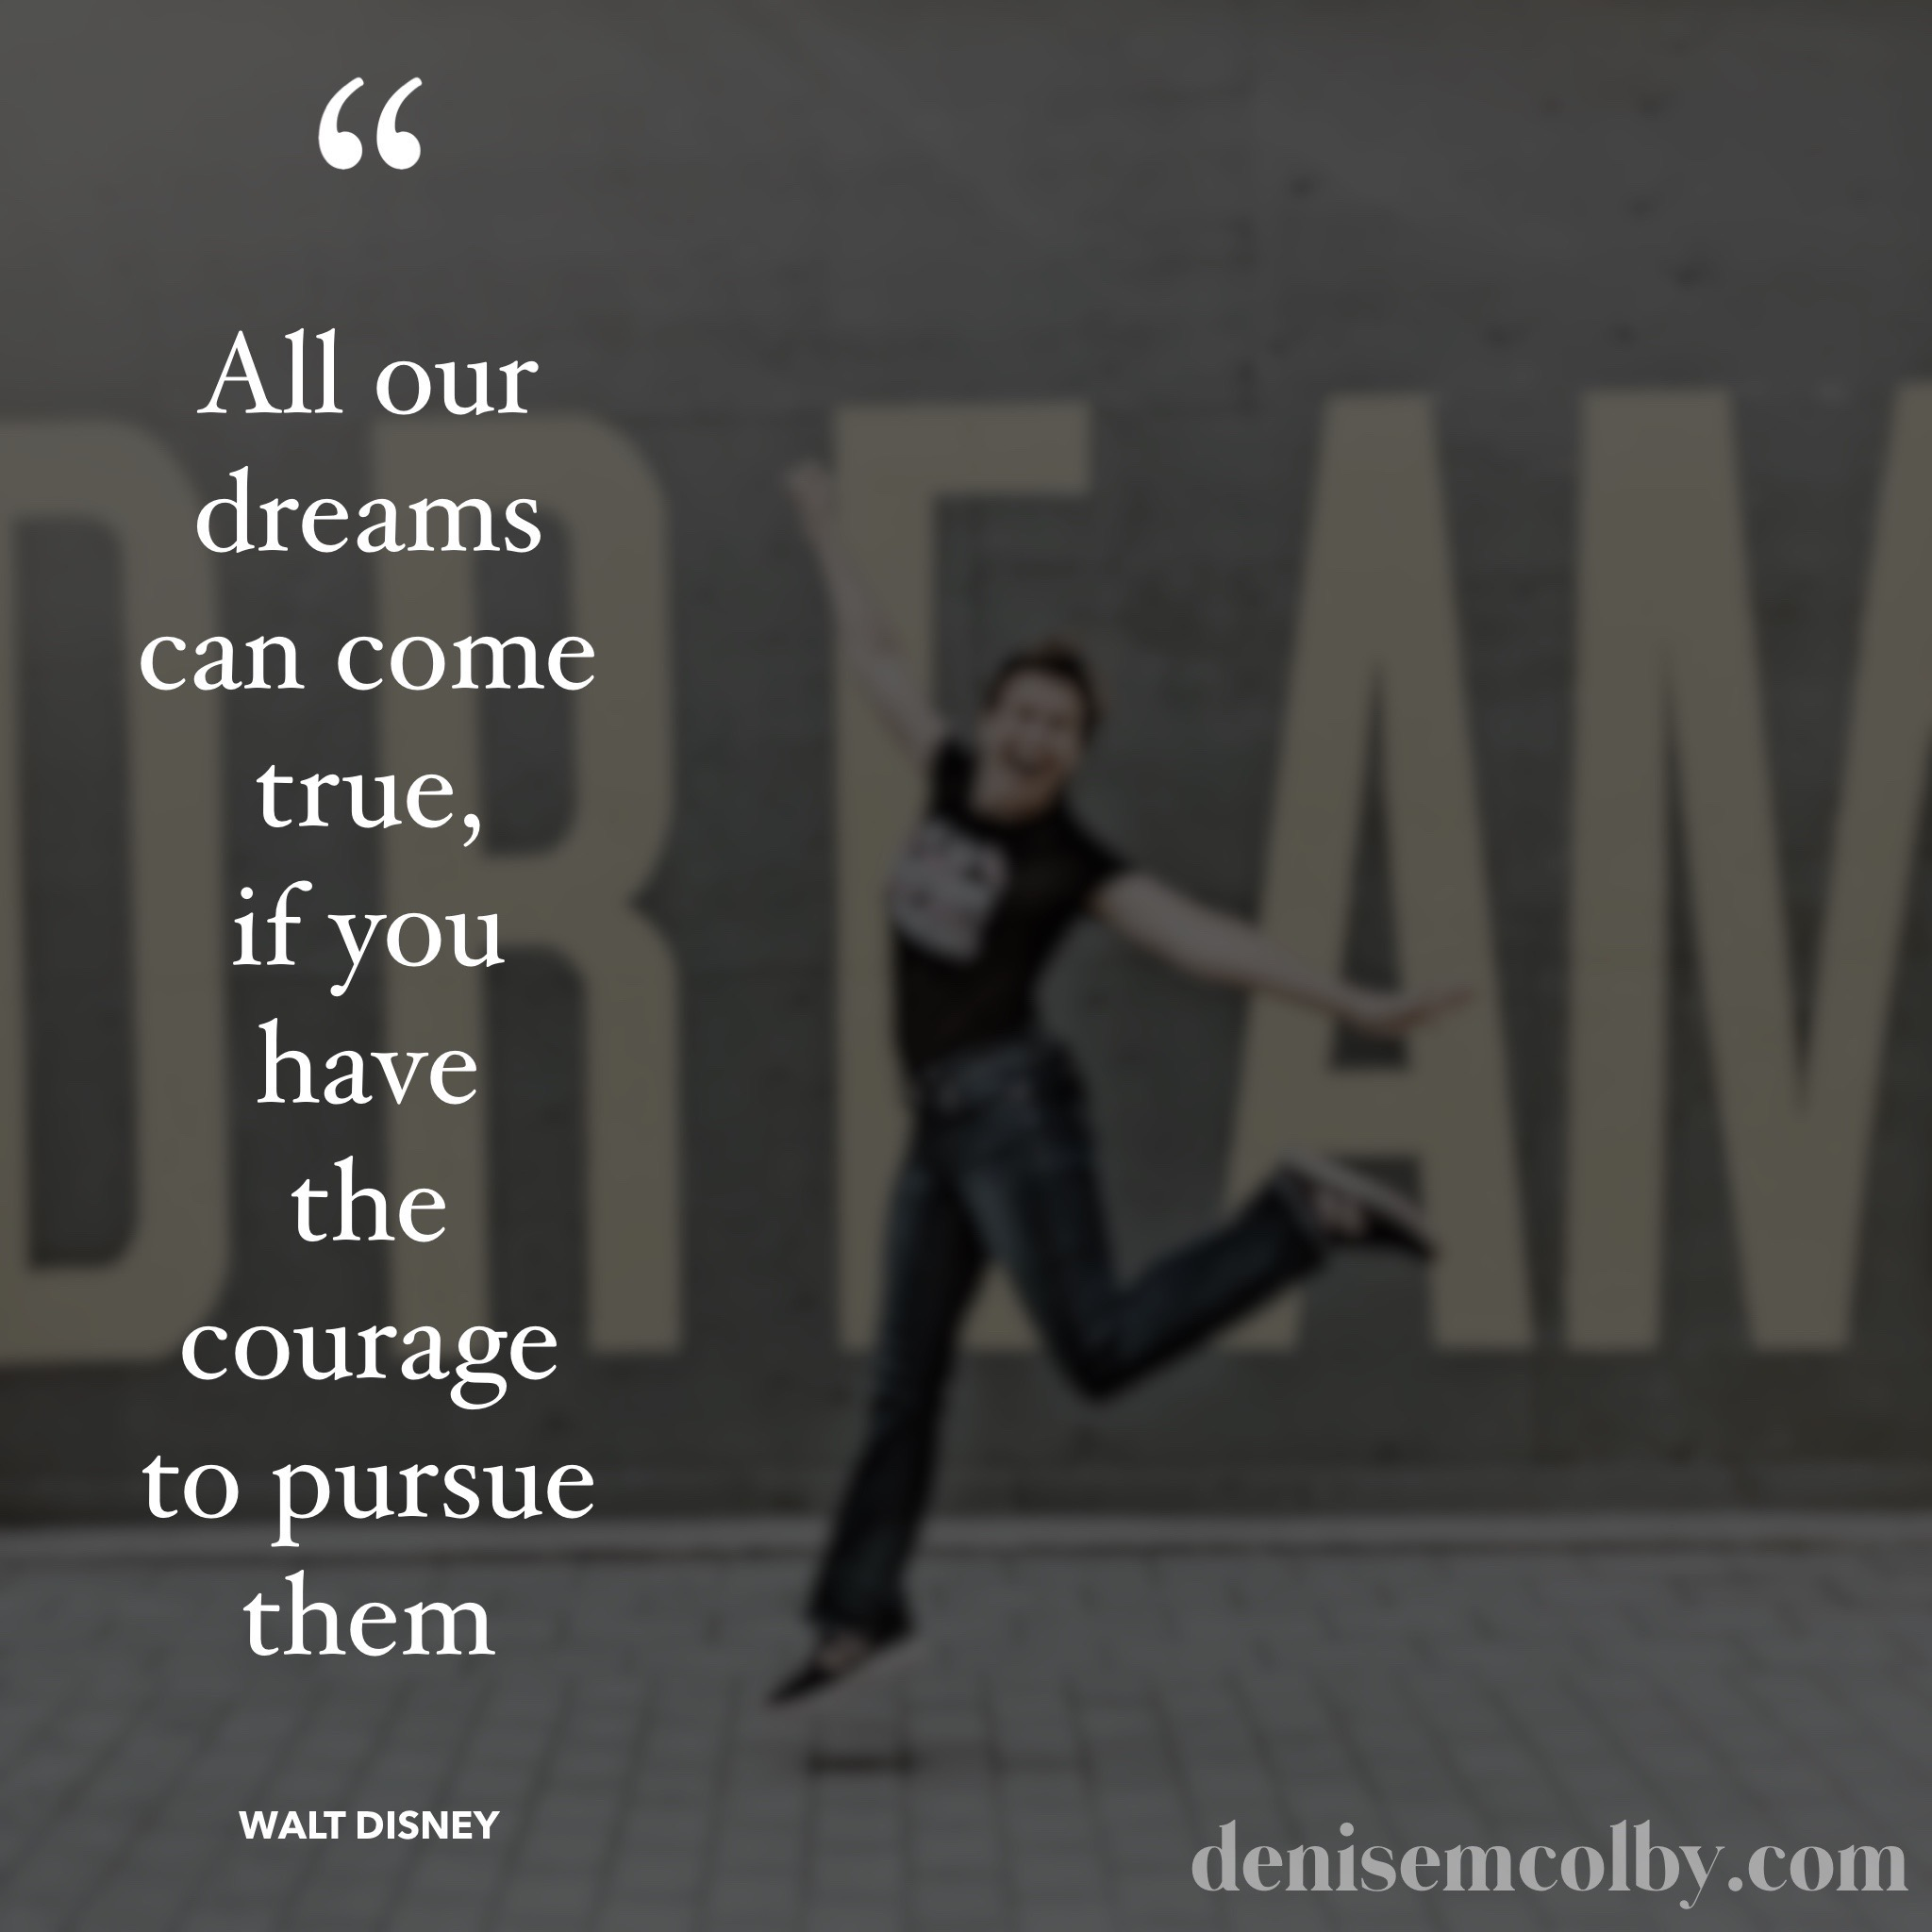 Walt Disney Quote All our dreams can come true, if you have the courage to pursue them with blurred photo of Denise M. Colby leaping in front of Dream sign